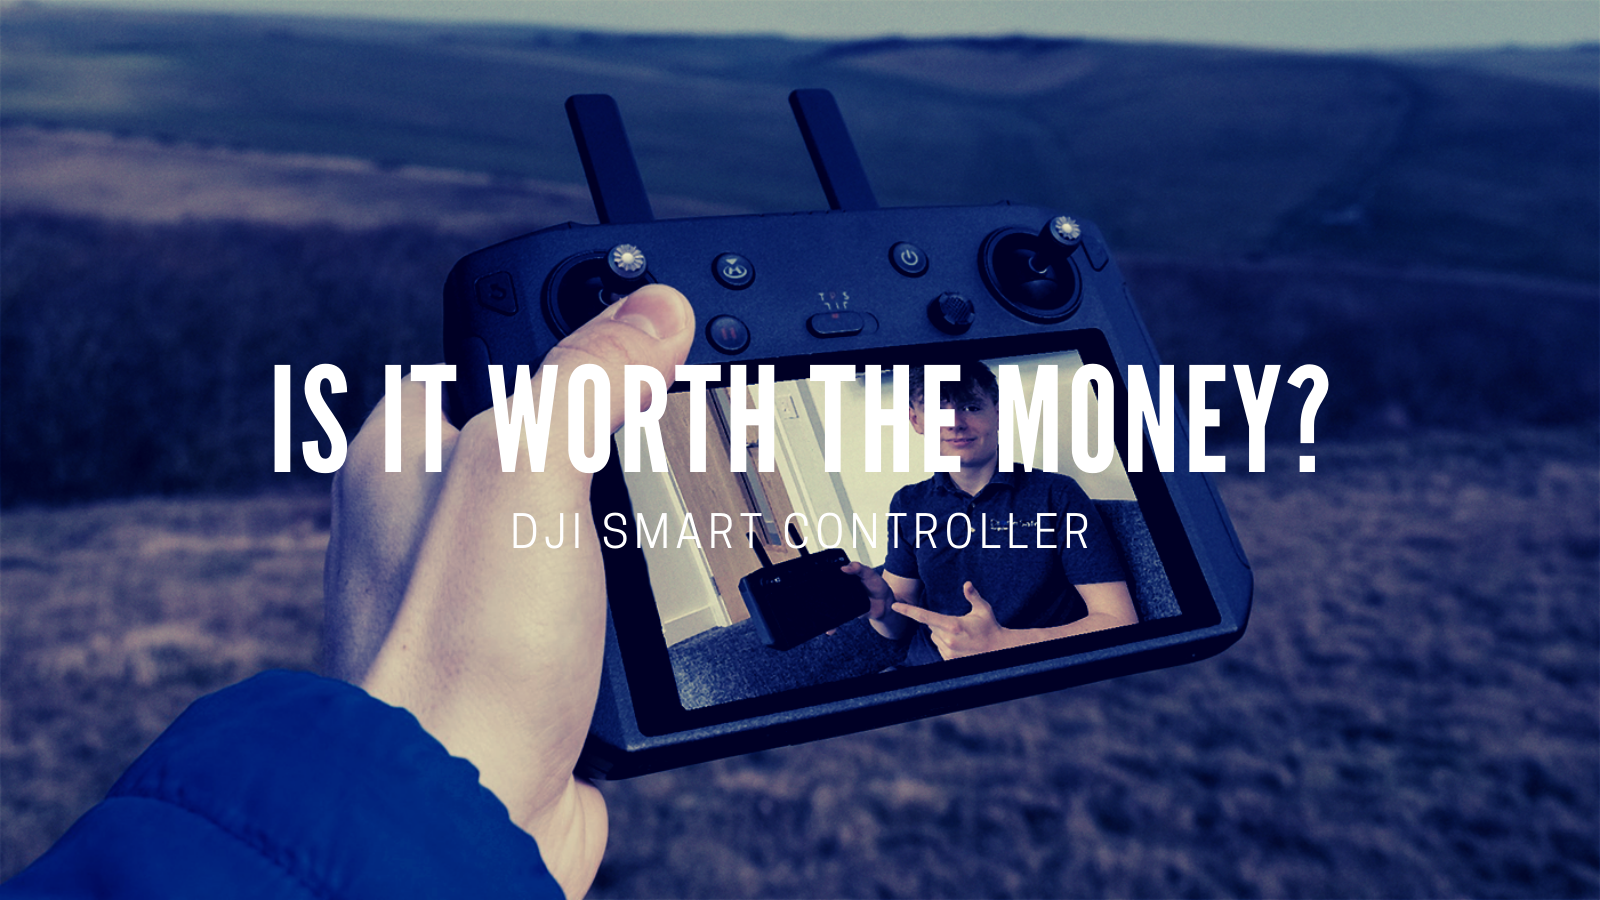 Is The DJI Smart Controller Worth It?